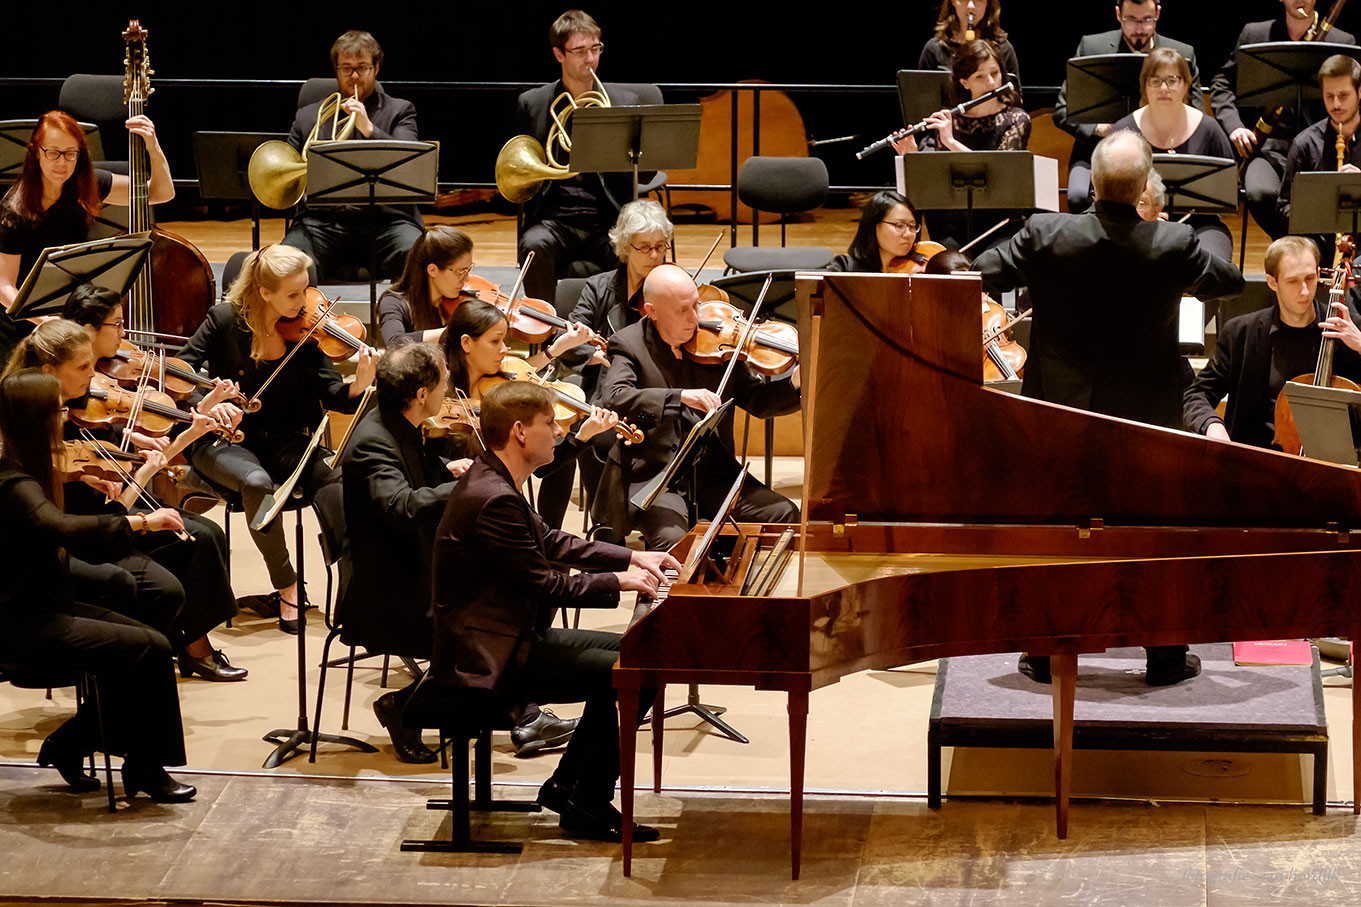 Orchestra of the Eighteenth Century, Koncon orchestra and Kristian Bezuidenhout. Mozart double tour. Photo: Jan Hordijk